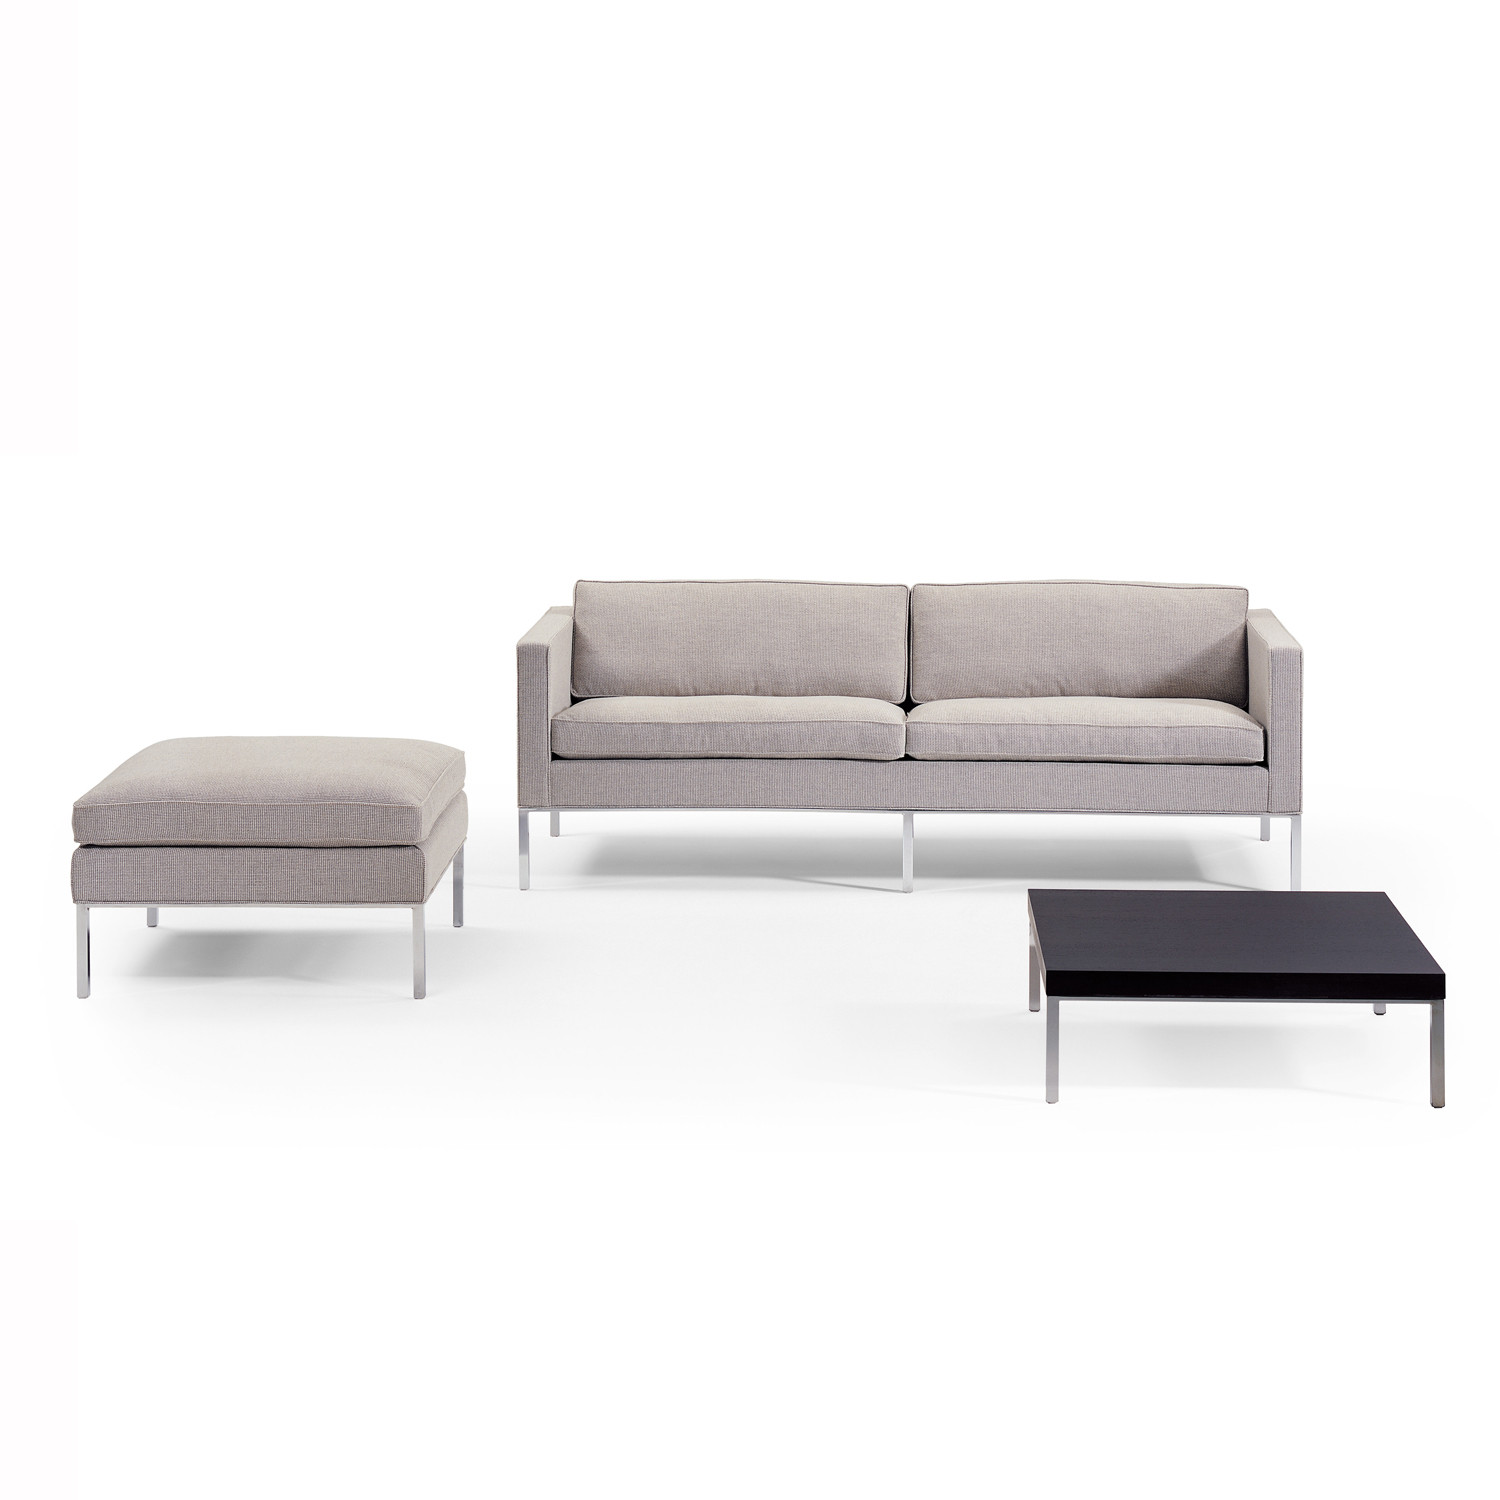 Artifort 905 Sofa